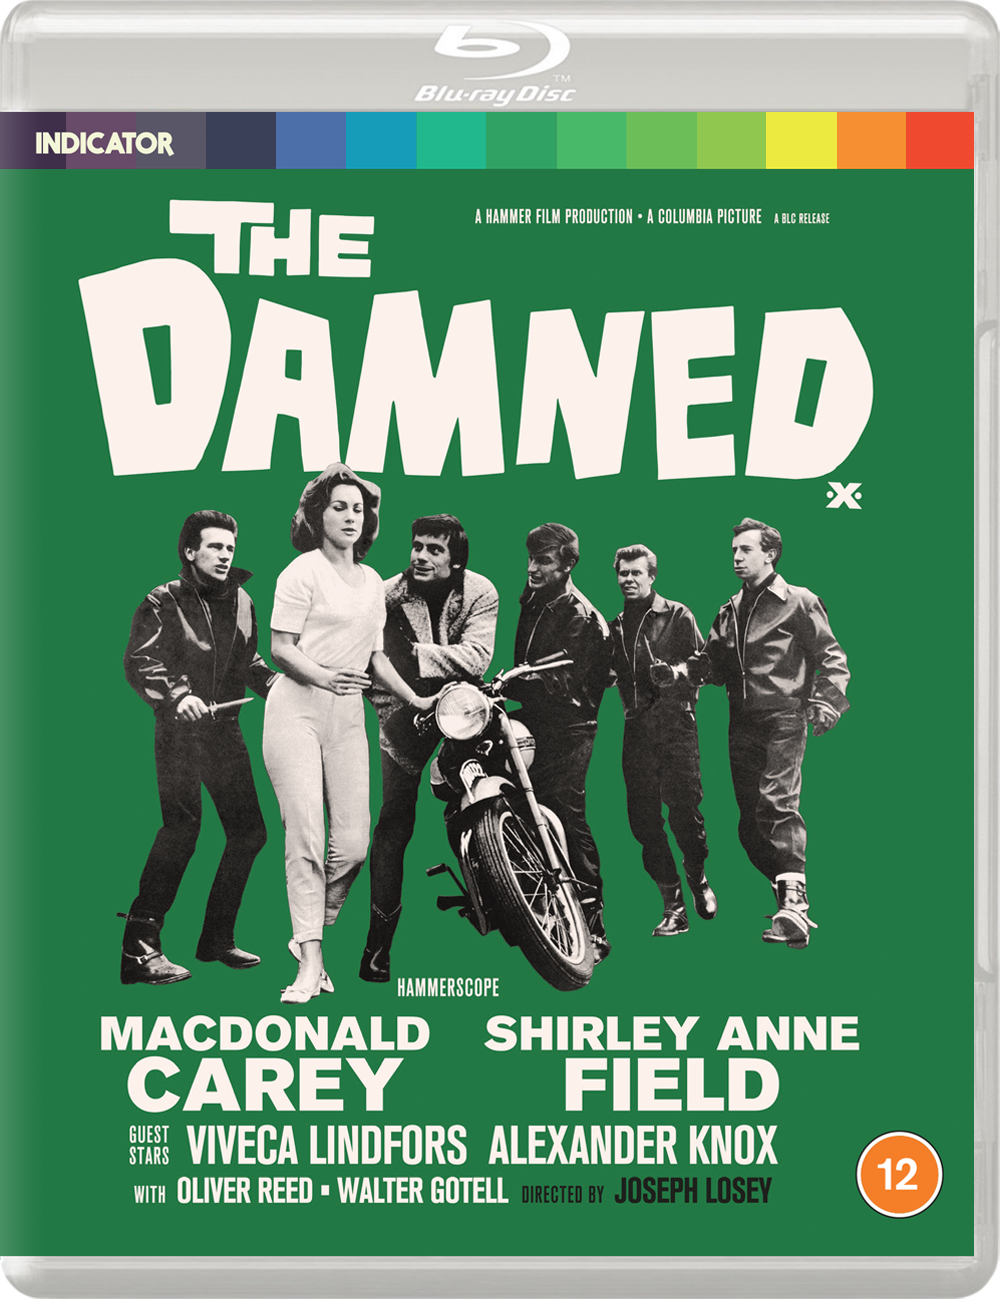 THE DAMNED - BD